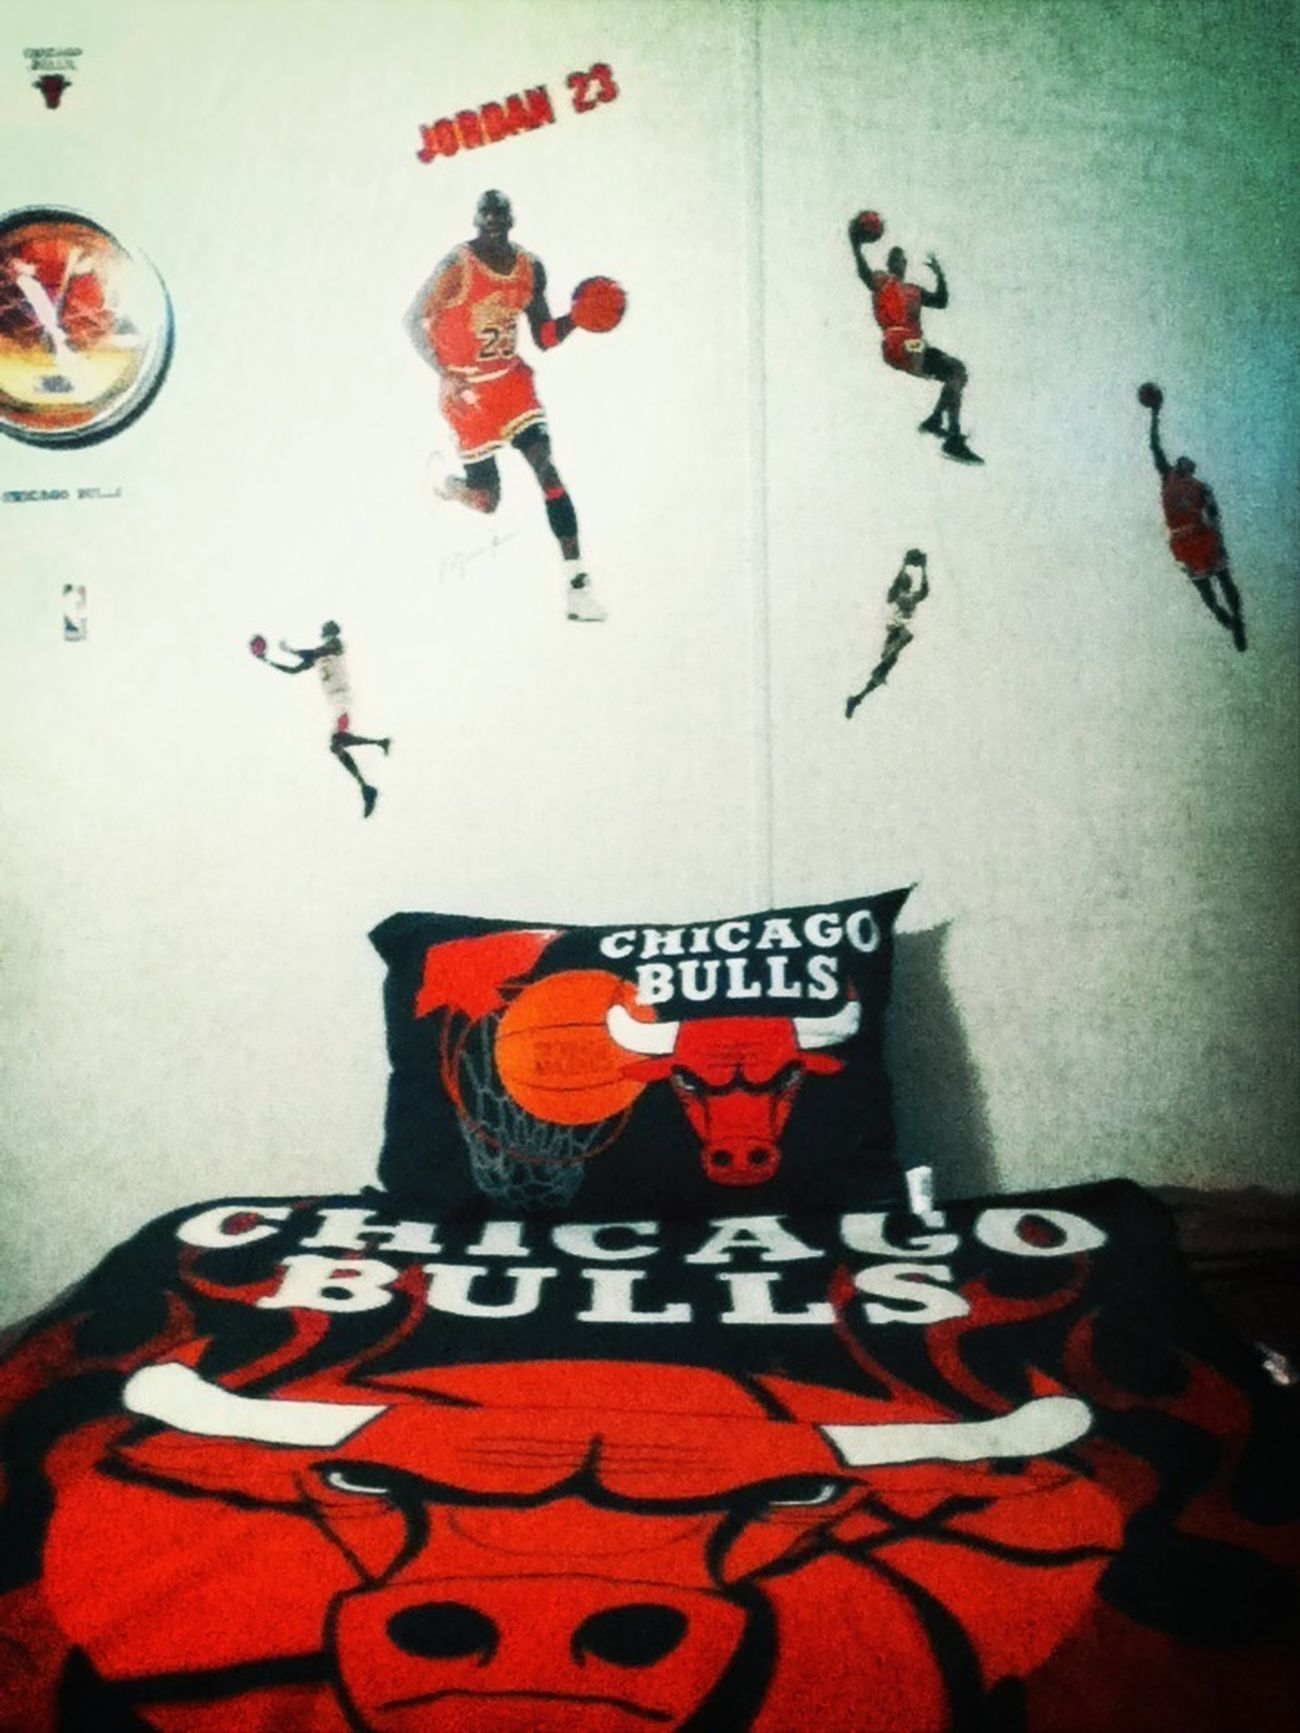 I'm addicted to Chicago Bulls!! :)